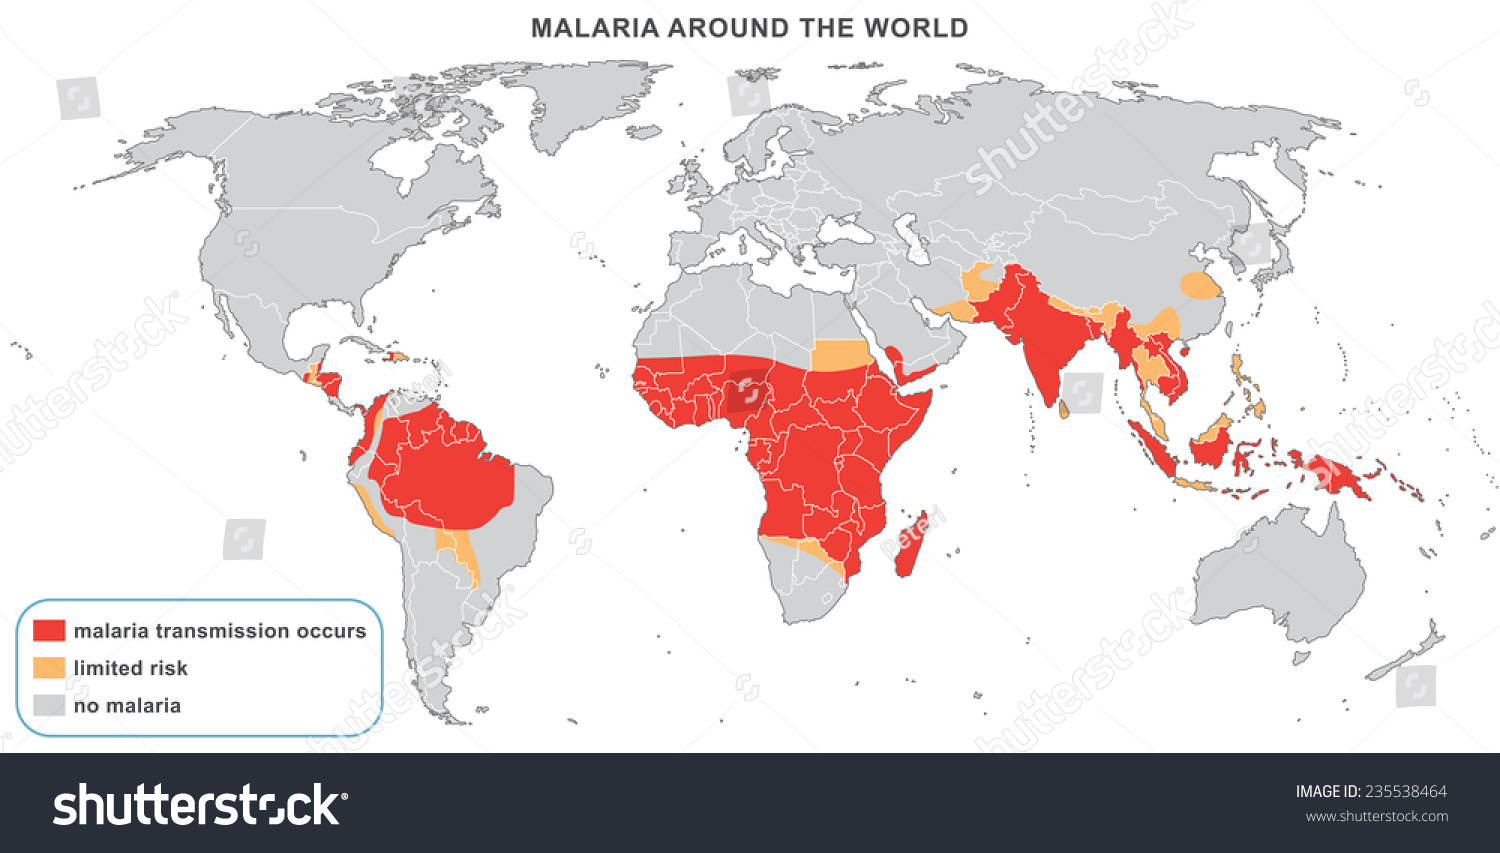 an analysis of the dengue fever viral disease in tropical and sub tropical regions around the world About dengue the dengue virus dengue disease to dengue haemorrhagic fever or dengue tropical and sub-tropical regions around the world dengue is.